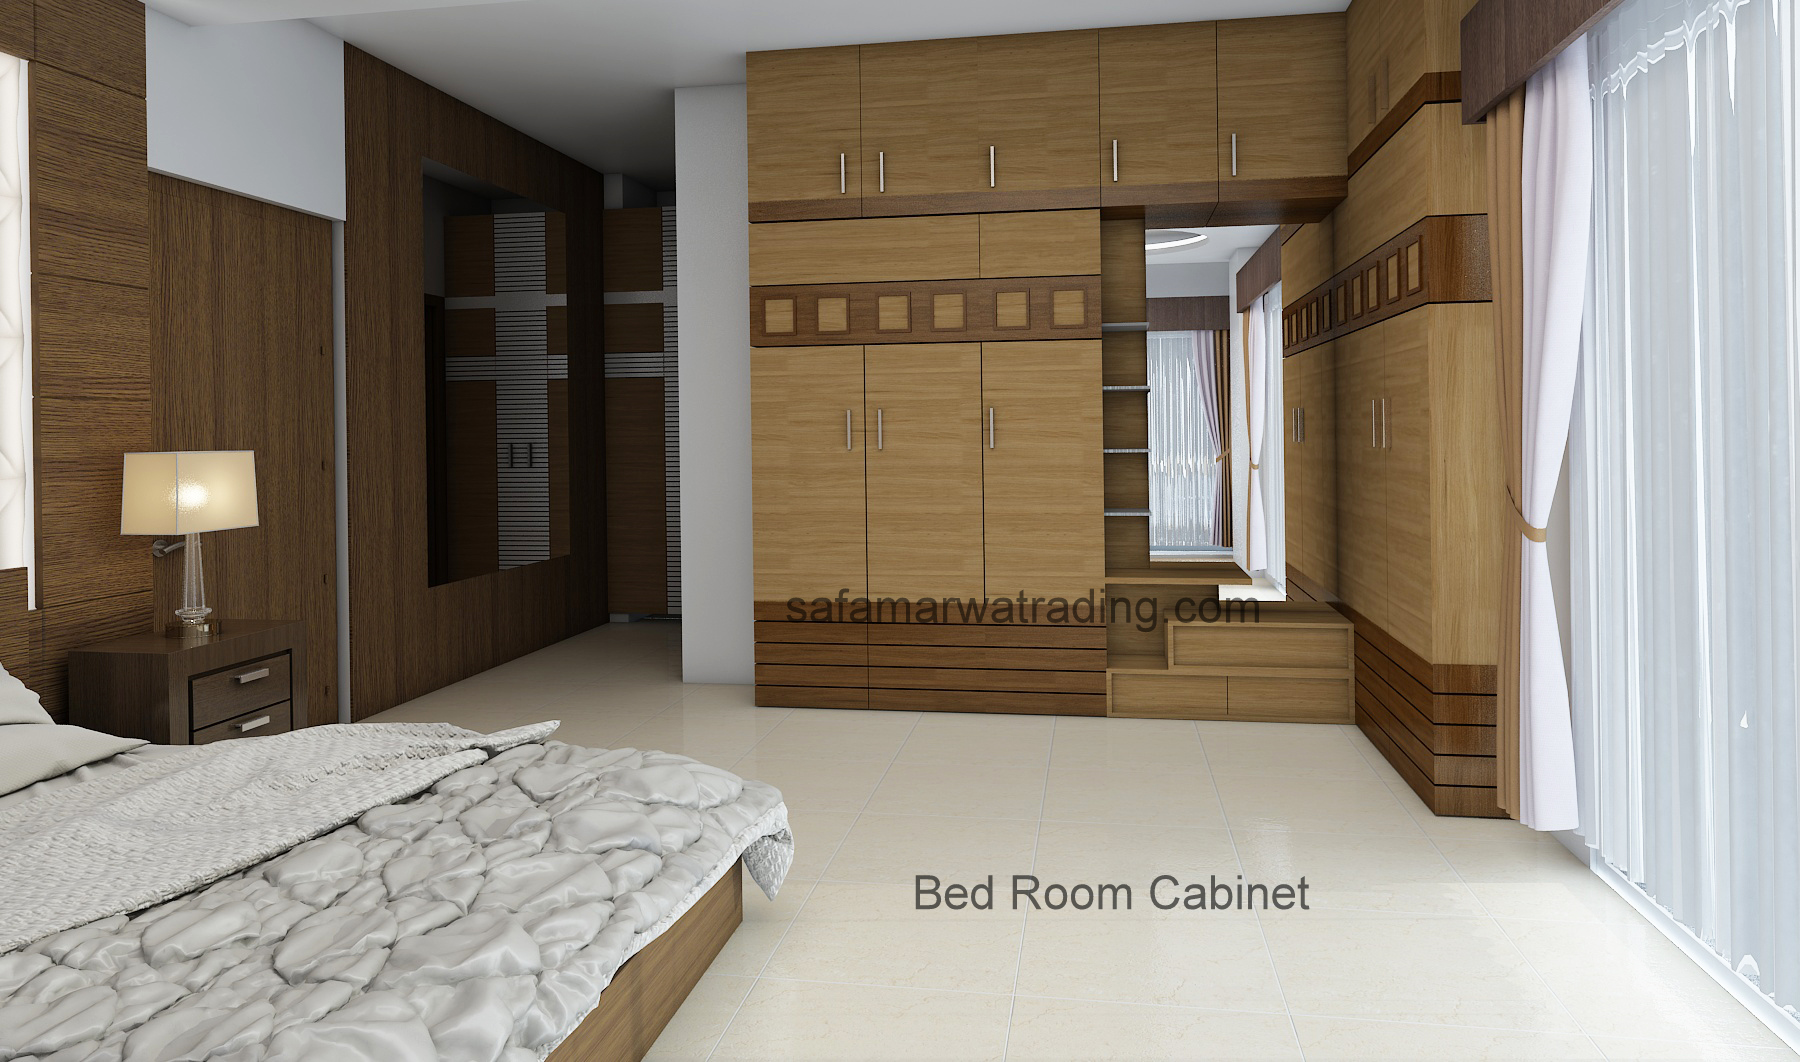 Bed Room Cabinter